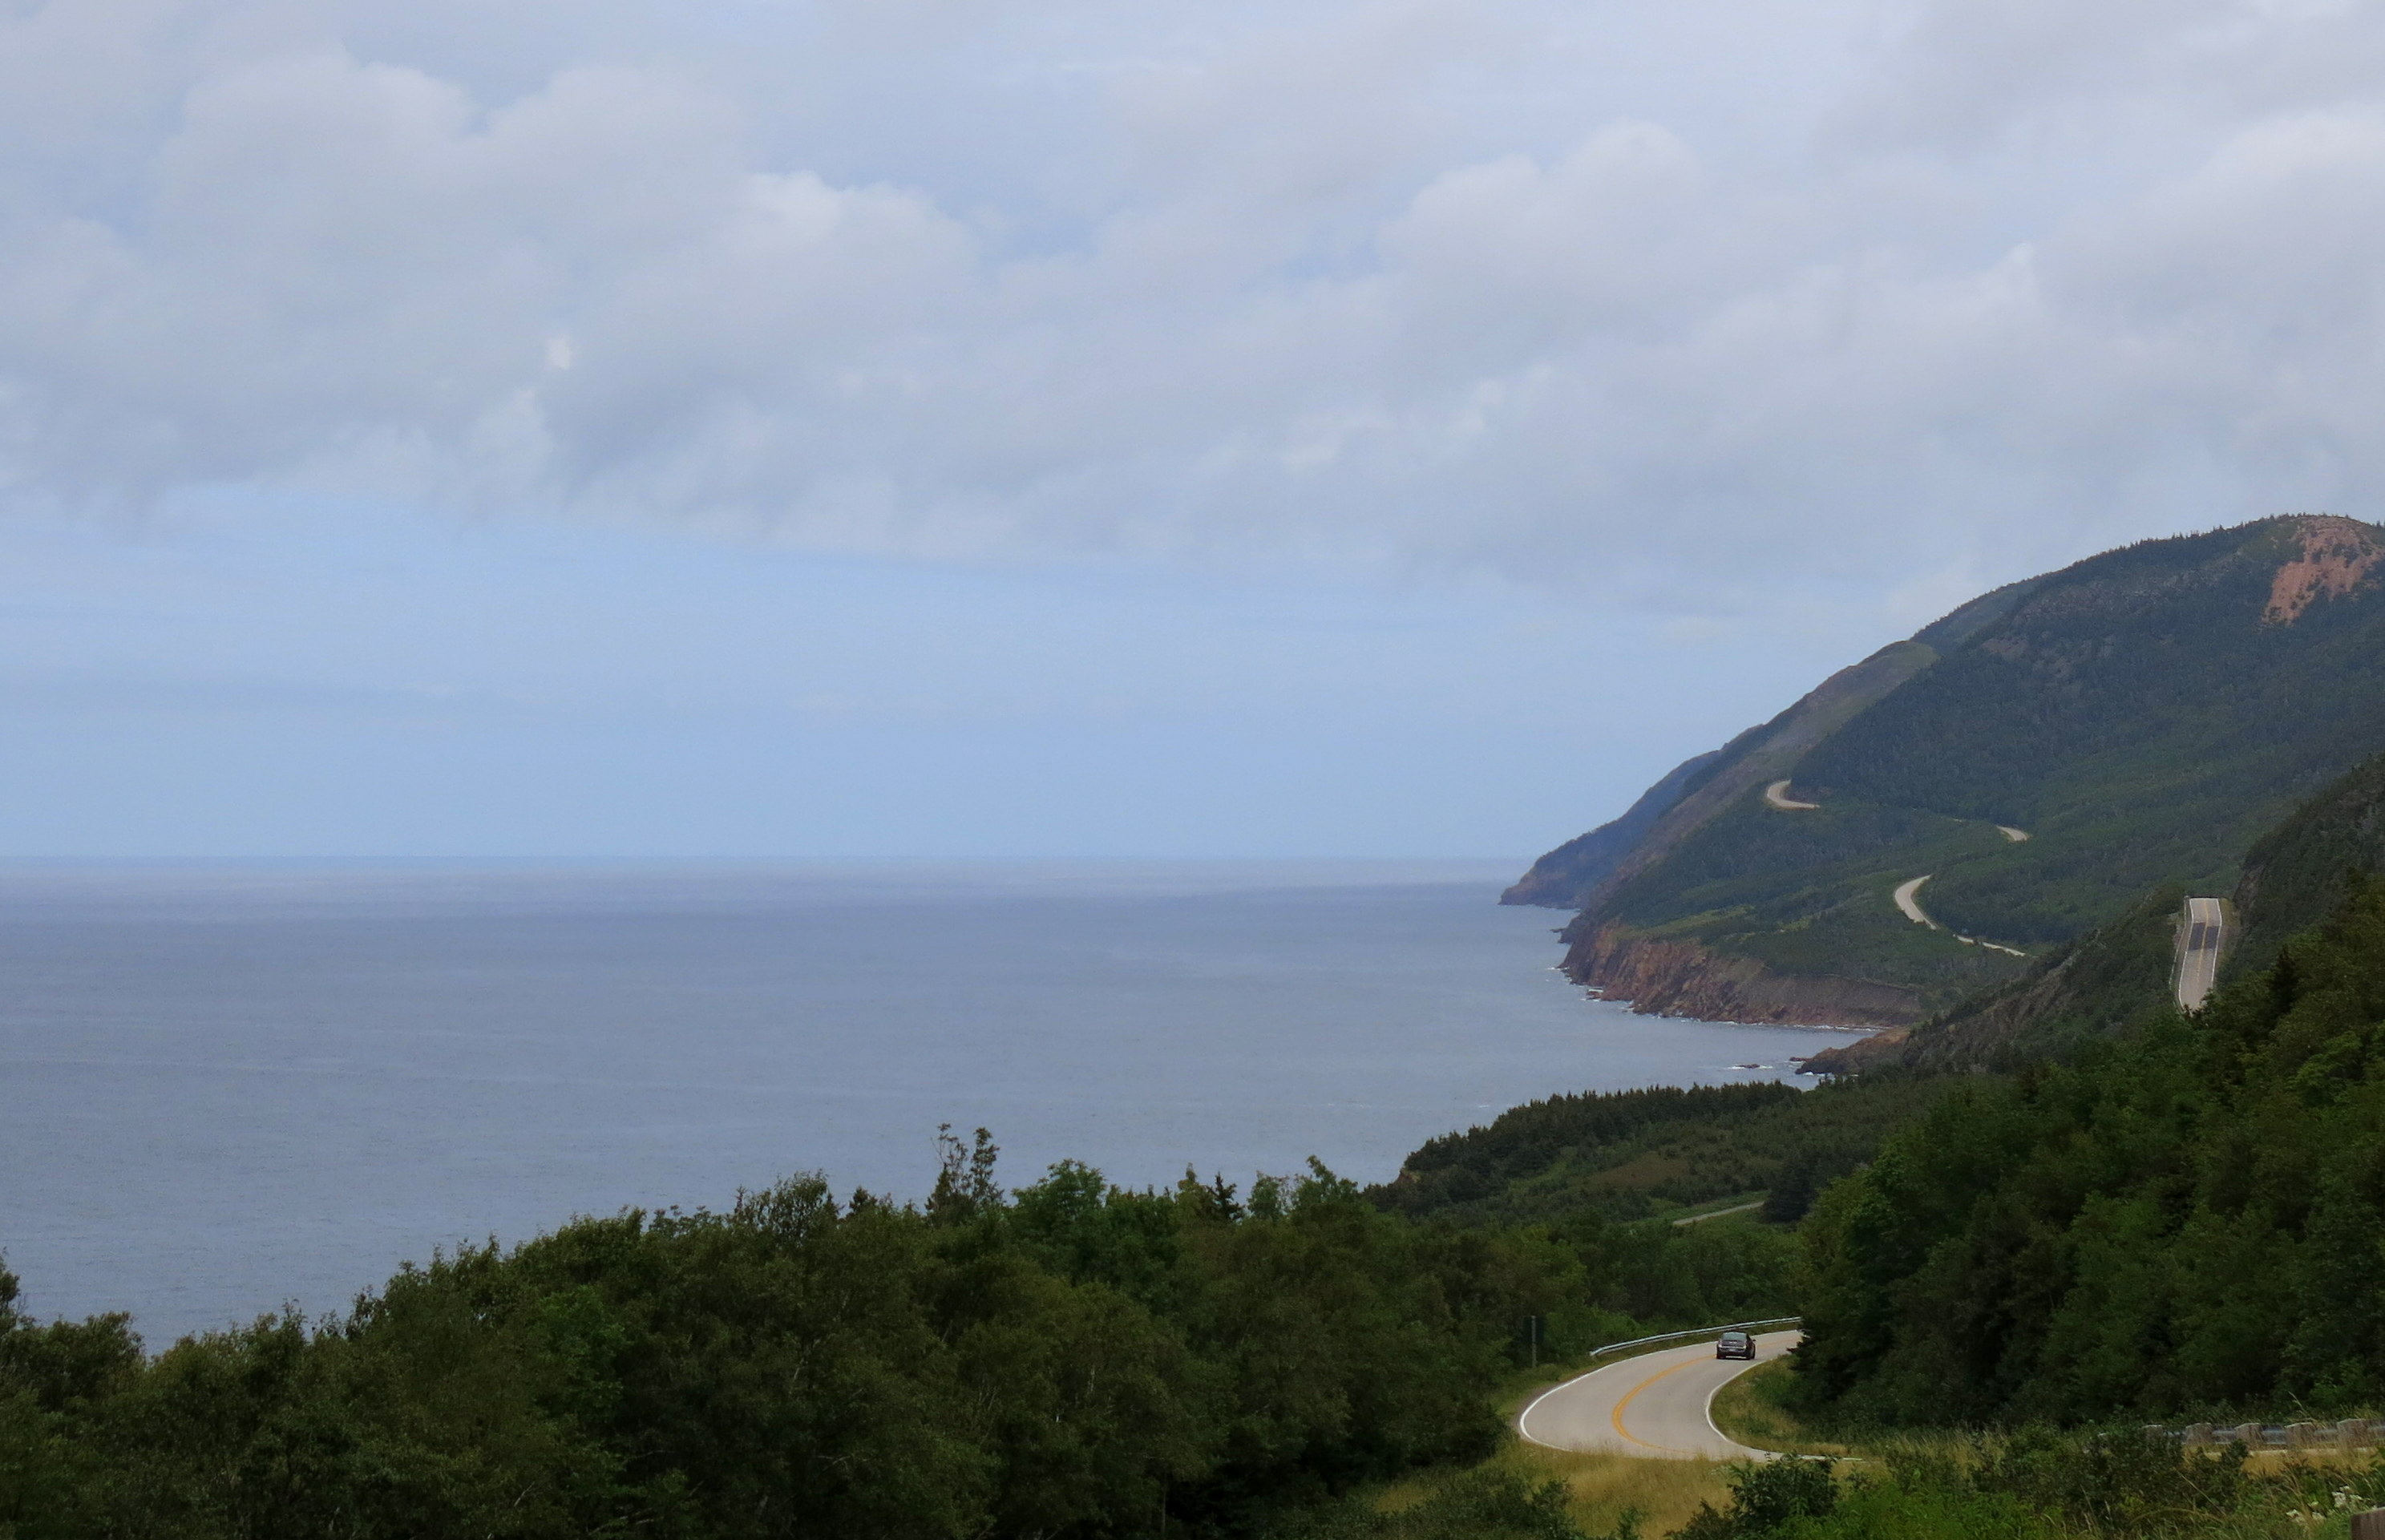 The famous Cabot Trail on Cape Breton; one of the world's top driving trips. JIM BYERS PHOTO